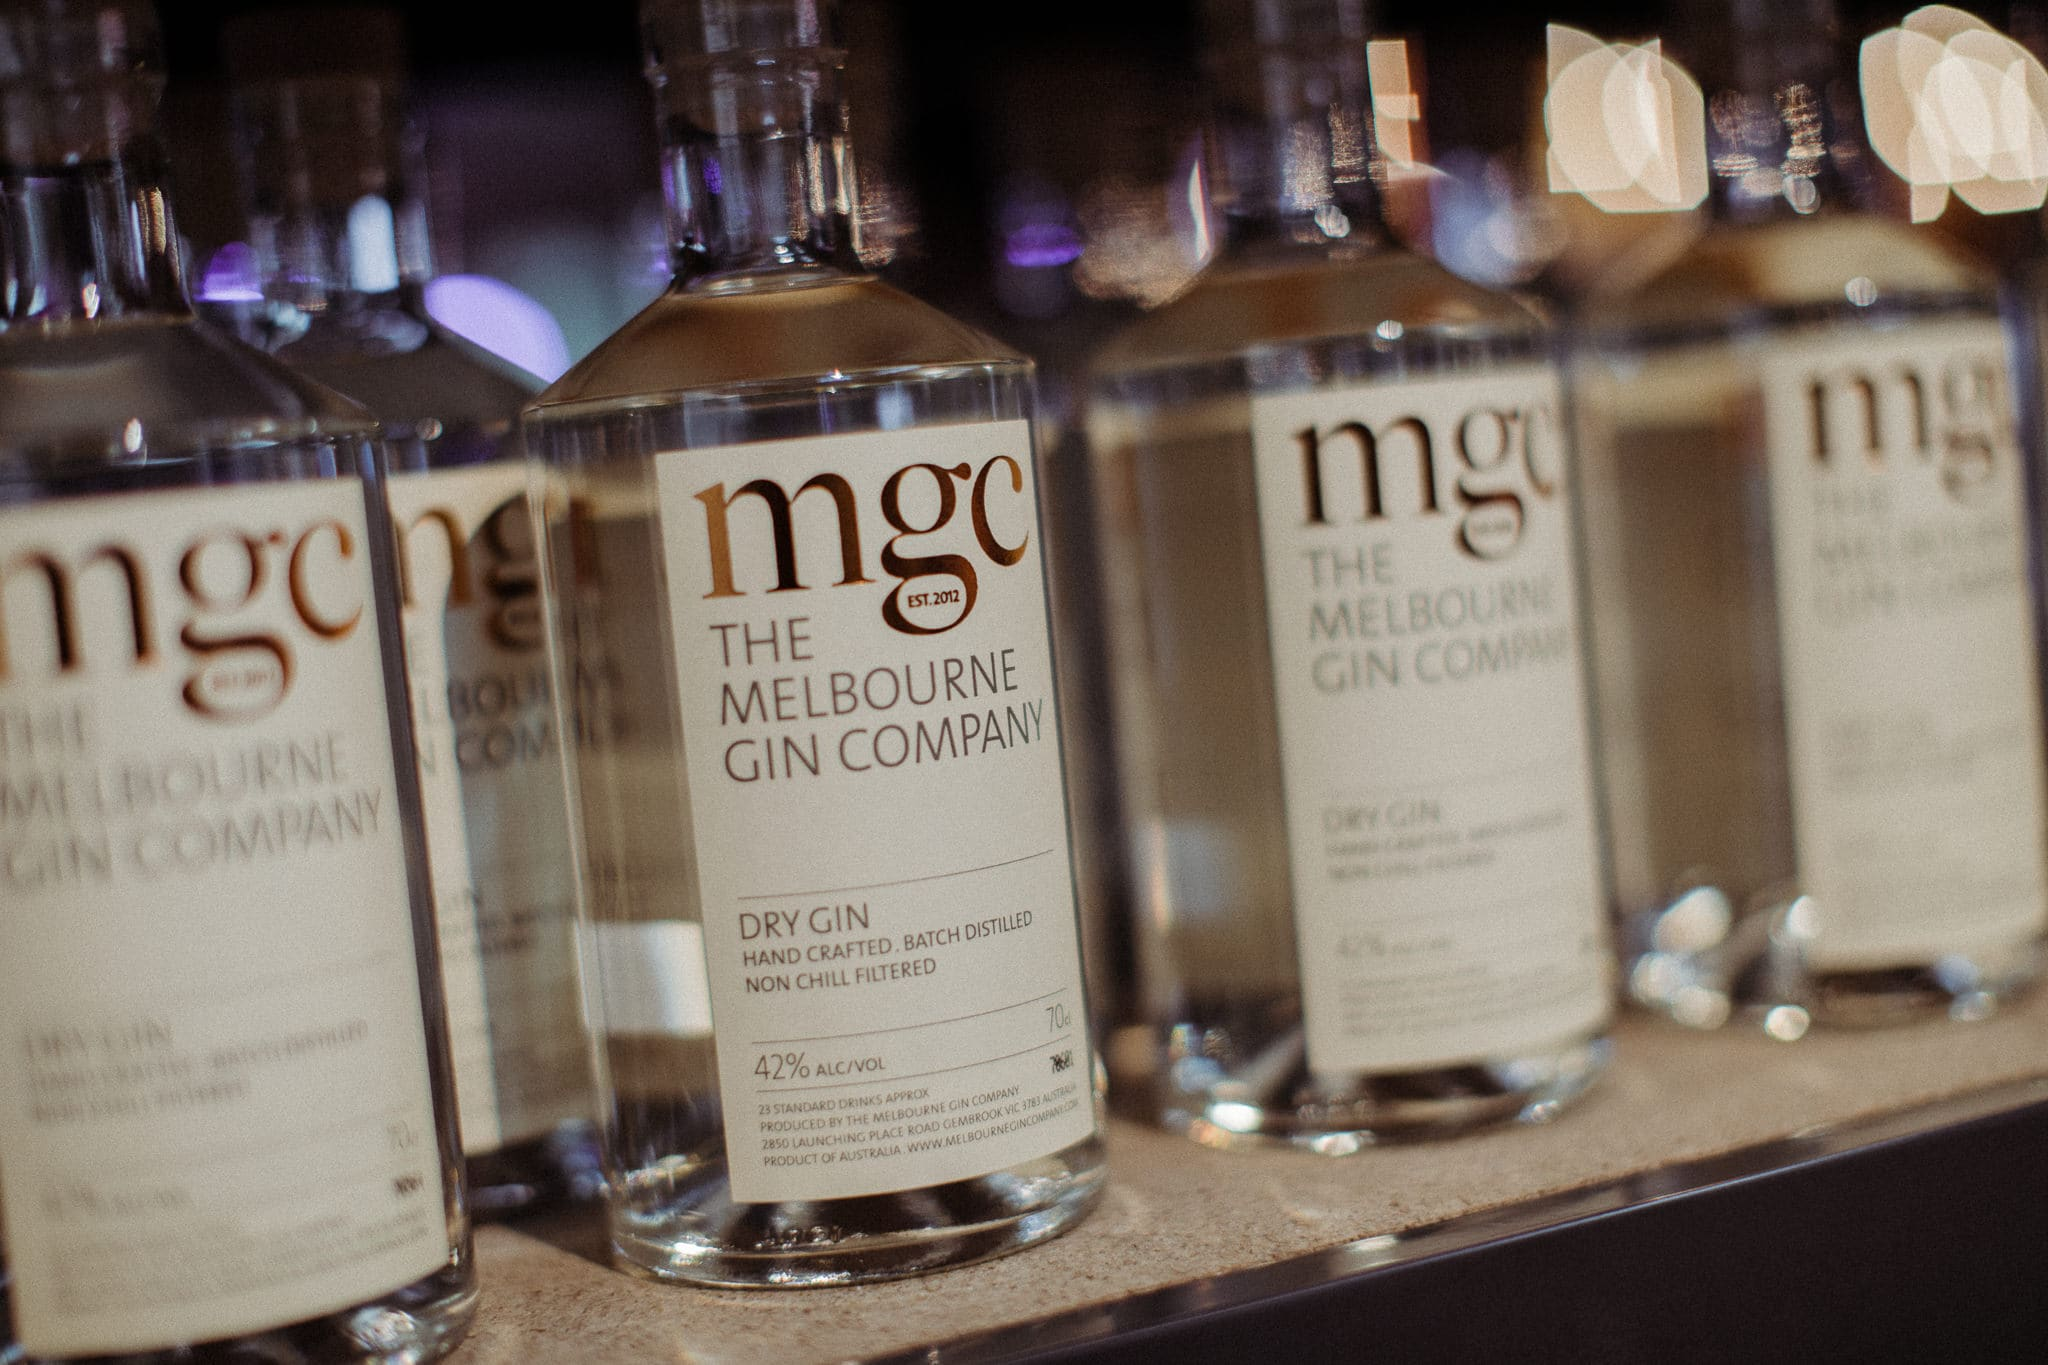 mgc - melbourne gin company